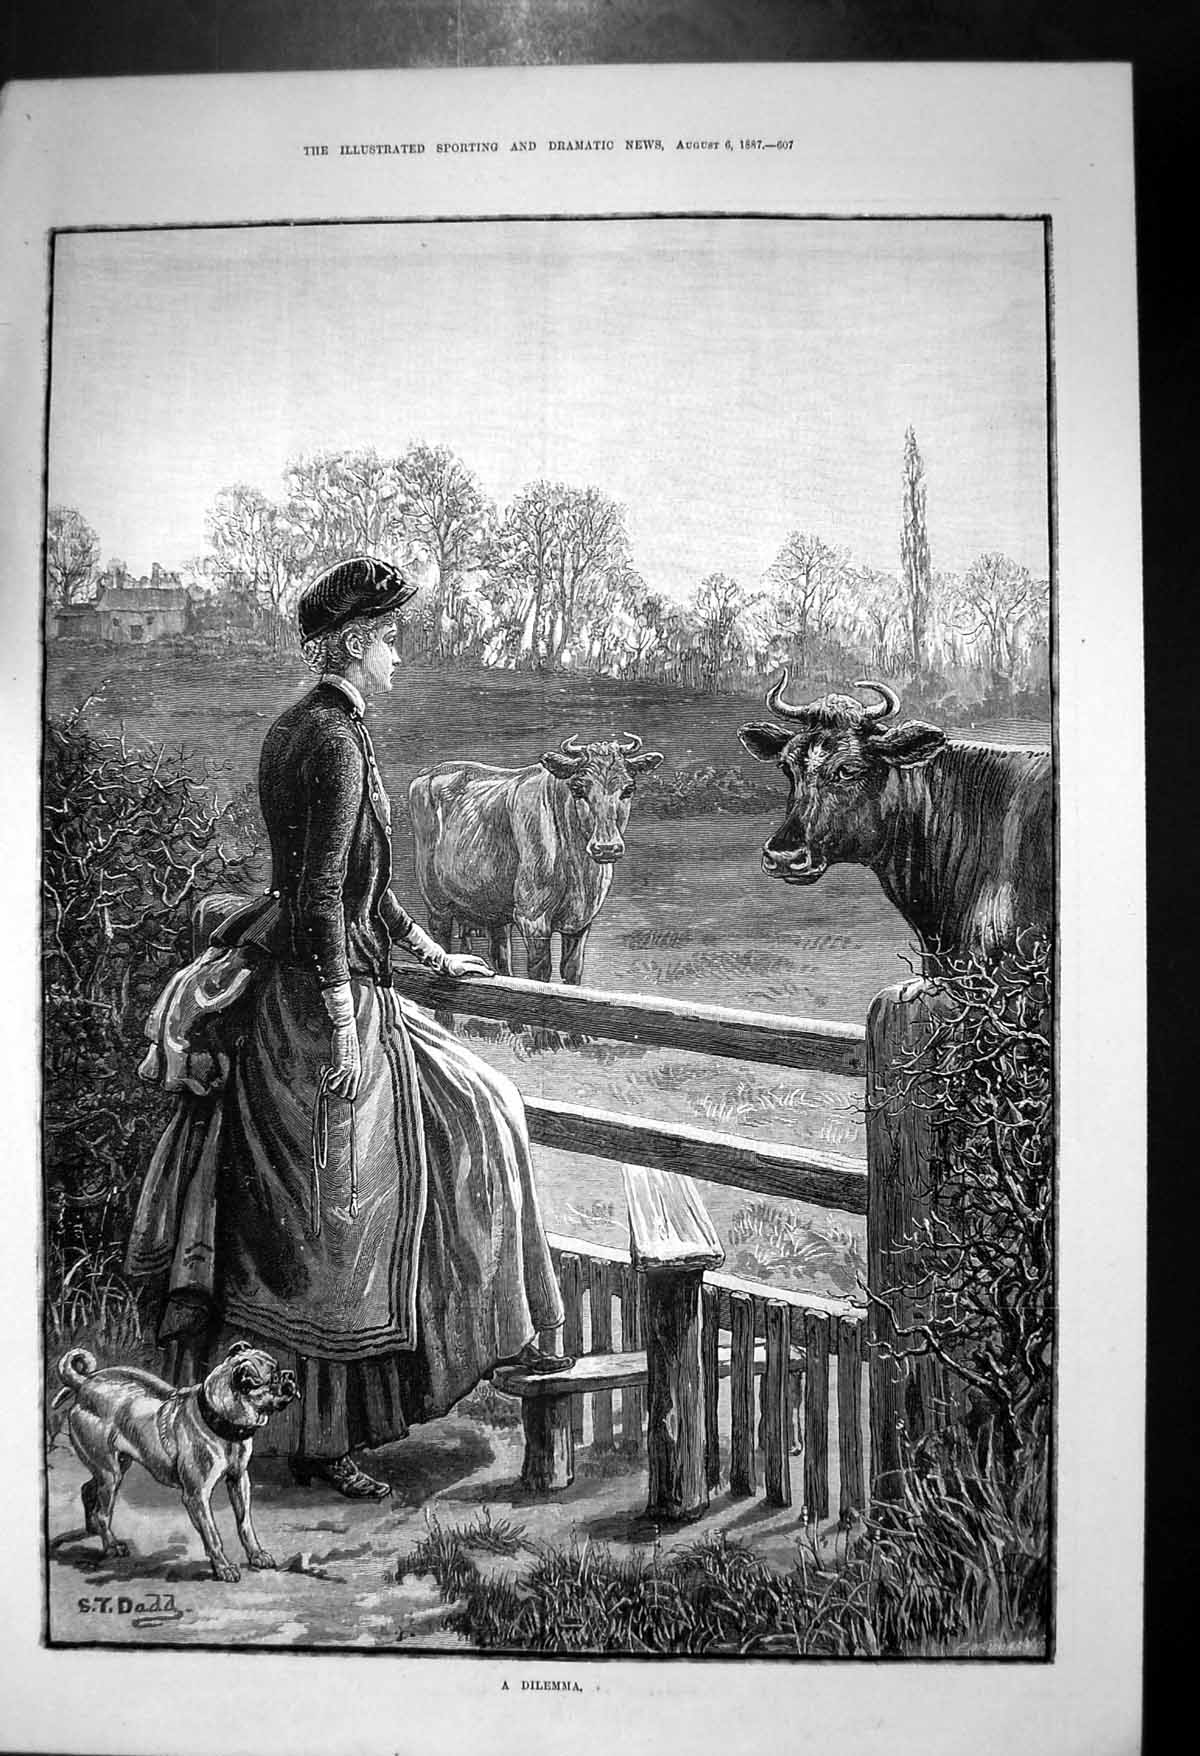 [Print A Dilemma St Dadd Lady Dog Step Fence Cows In Field 1887 568J687 Old Original]